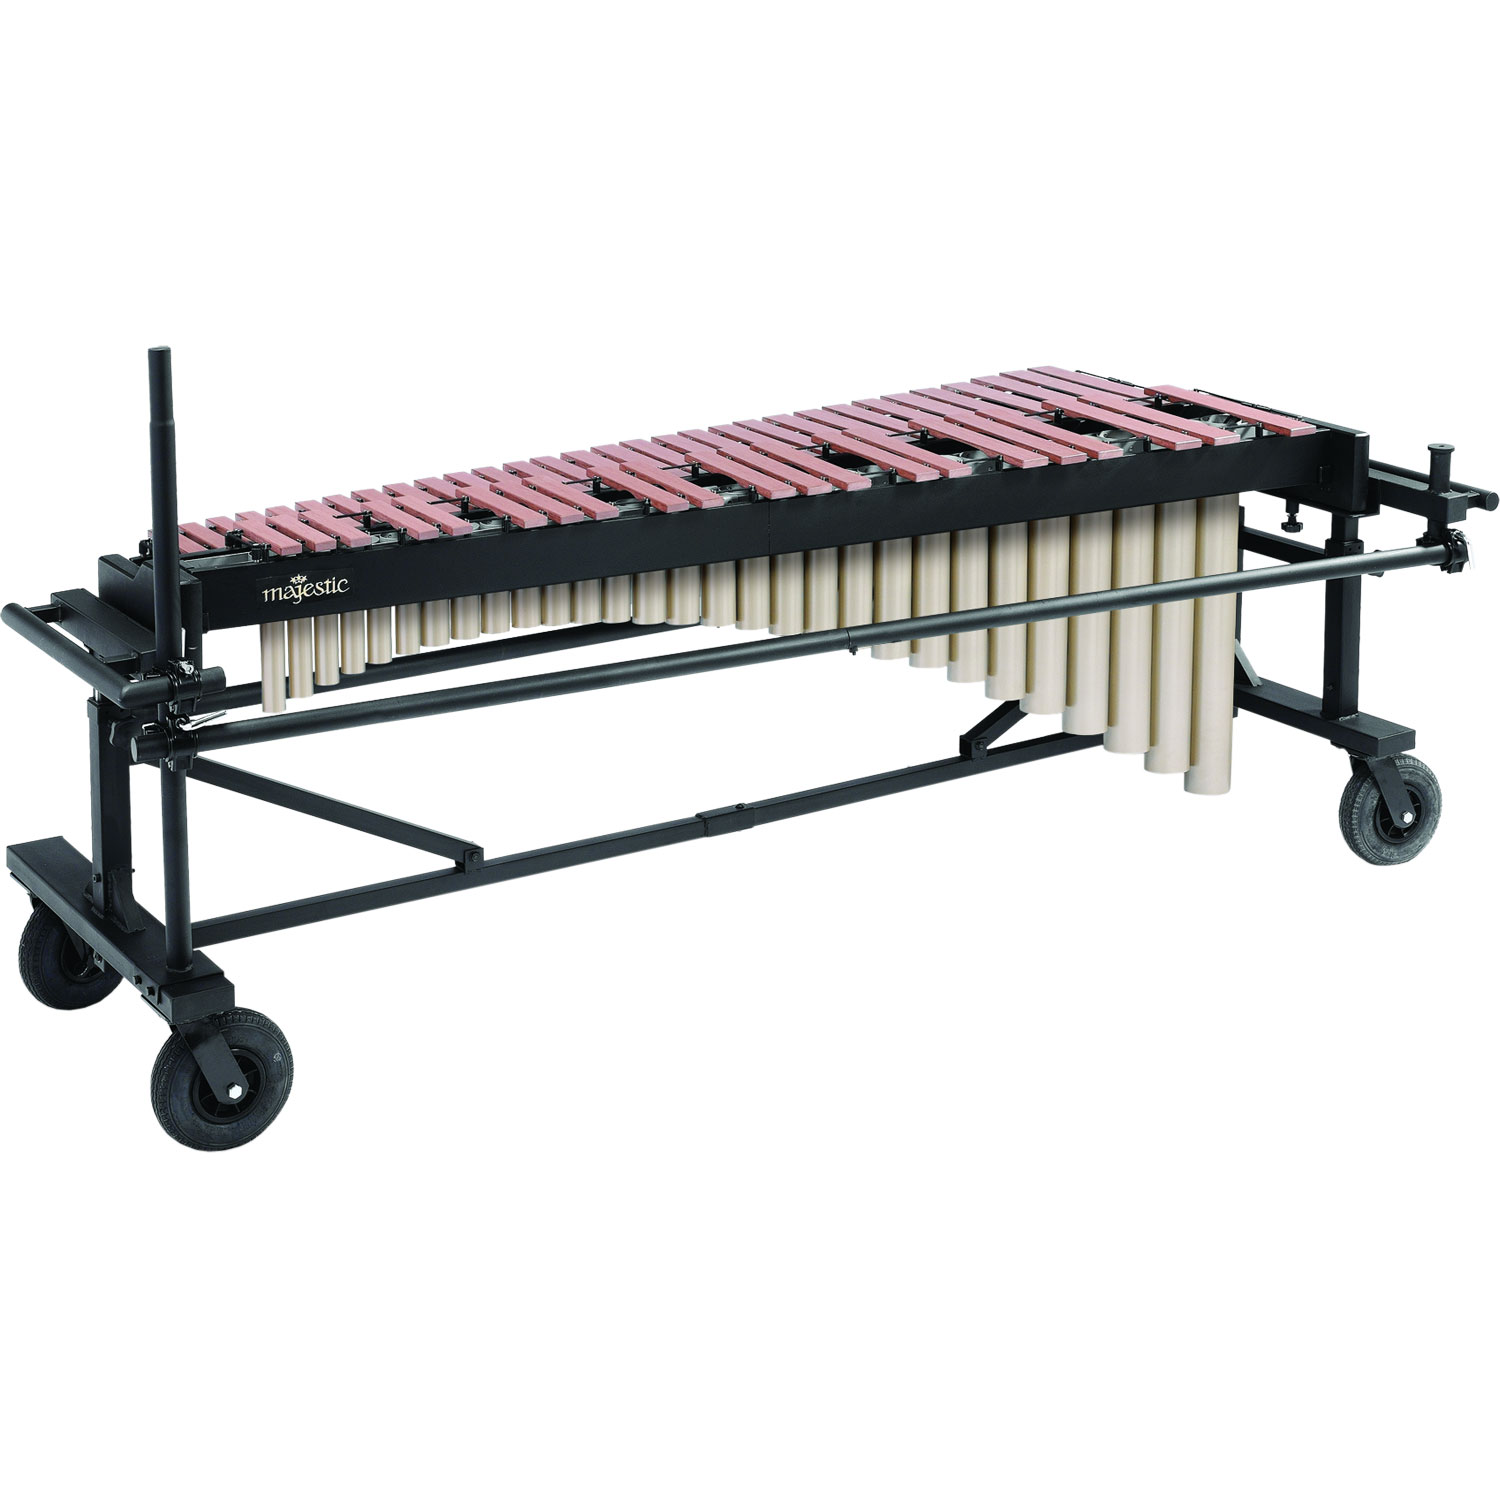 Majestic 4.3 Octave Quantum Marimba - Synthetic Bars, Field Frame